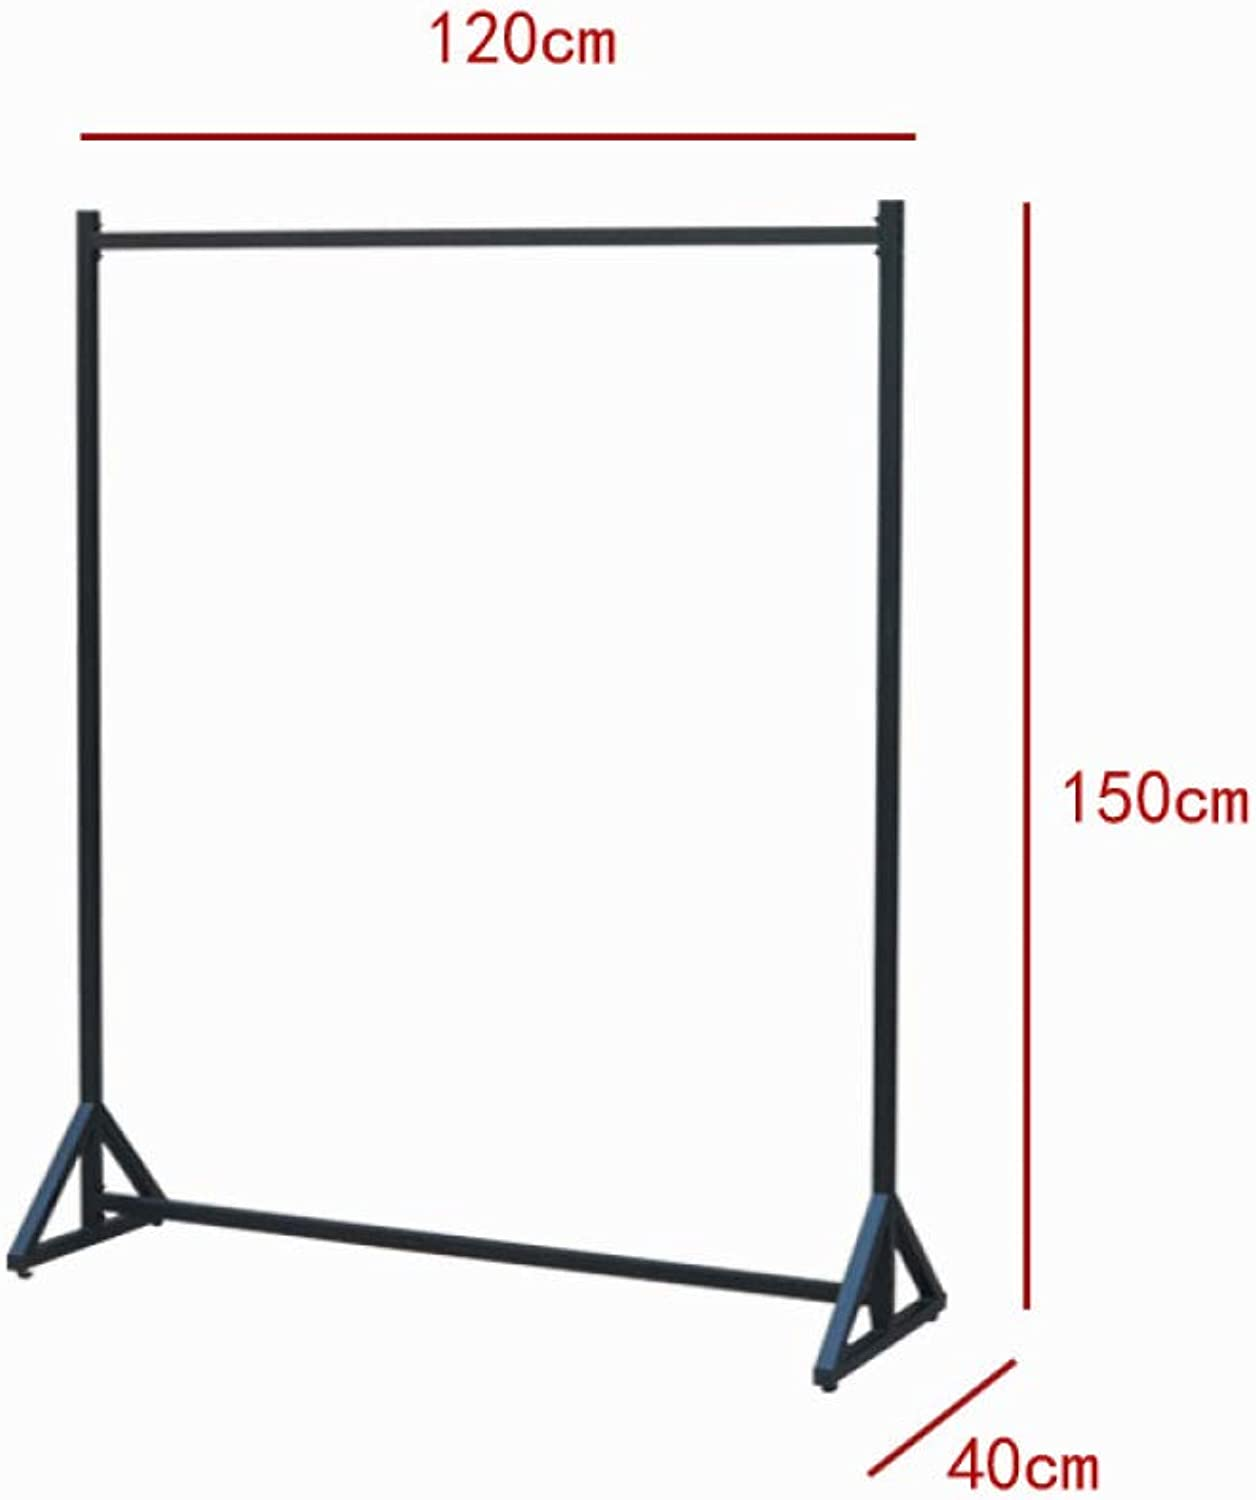 HHXD Clothing Store Creative Decoration Display Stand Floor-Standing Hanger Save Space and Strong Load Durable Black   120 x 40 x 150 cm